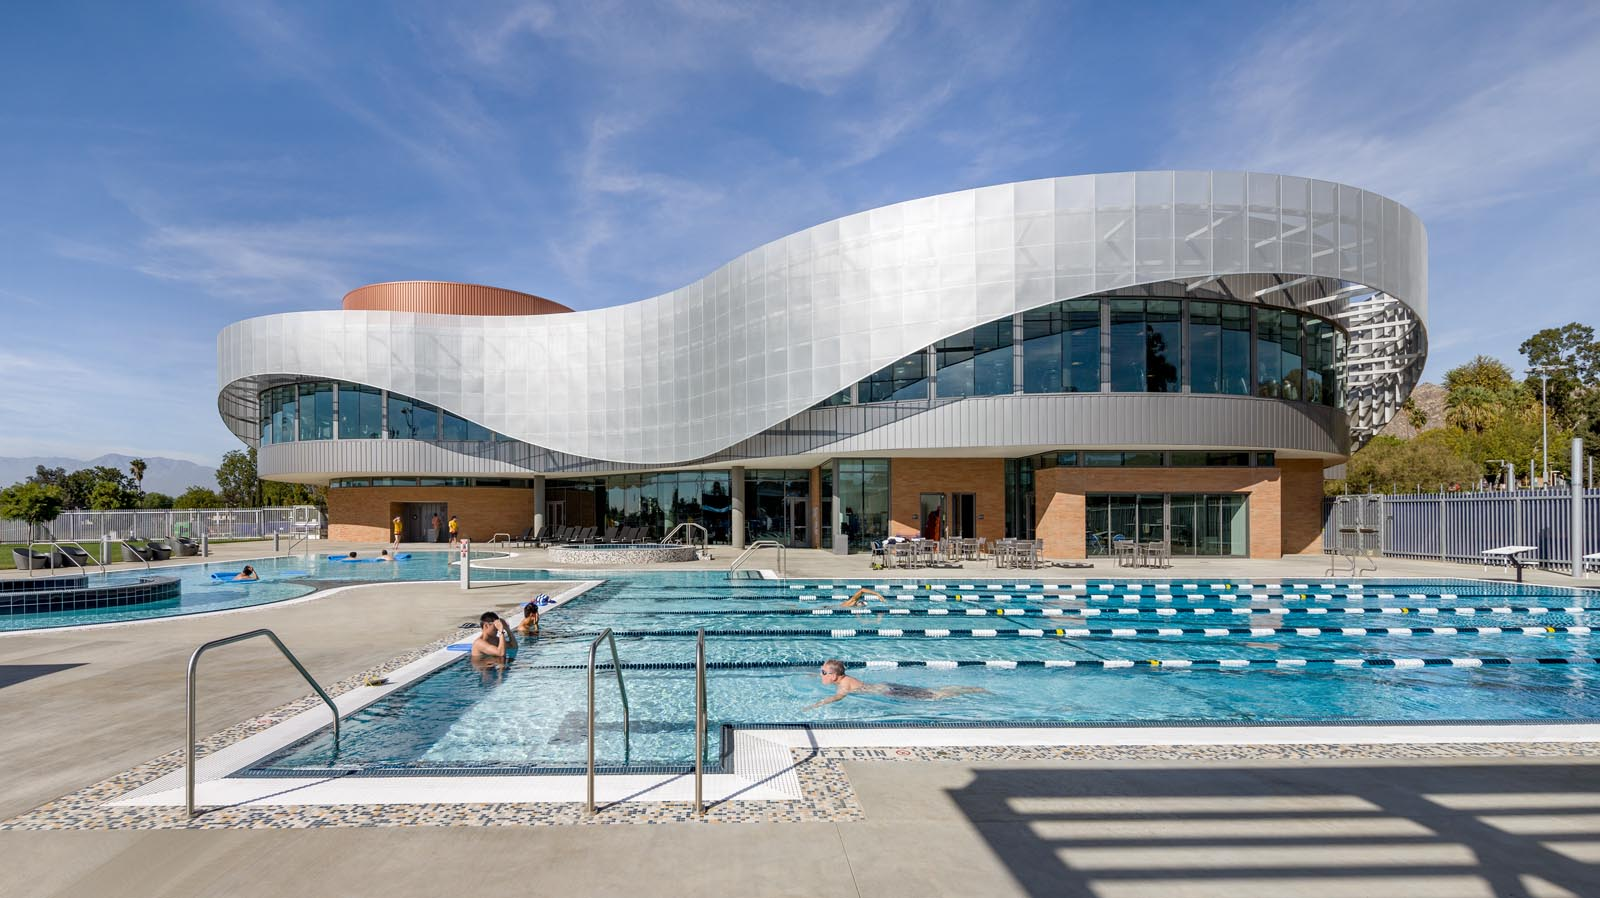 Ucr Student Recreation Center Expansion C W Driver